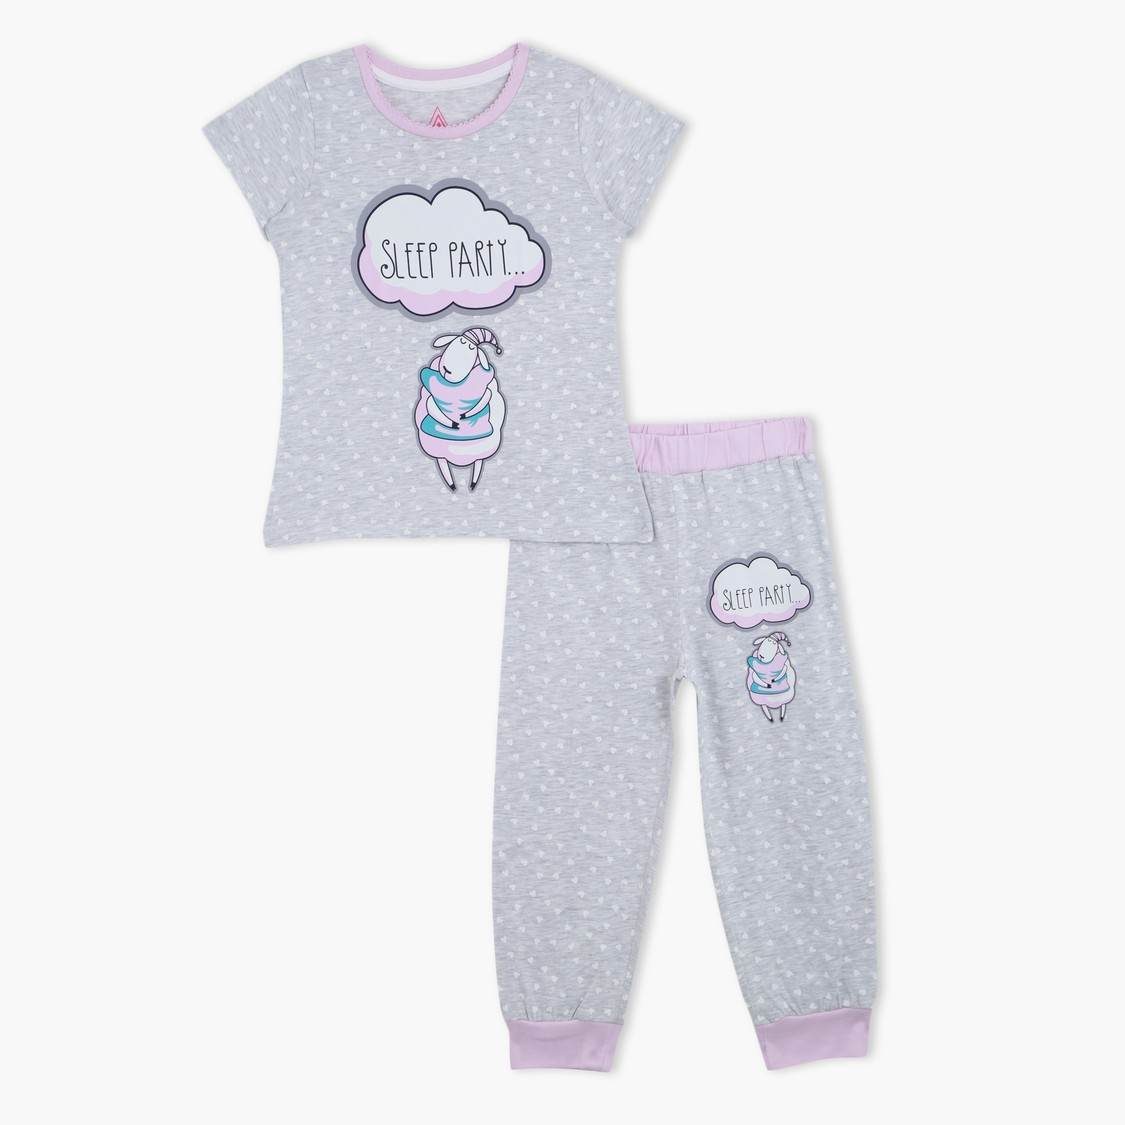 Printed T-Shirt and Pyjama - Set of 2